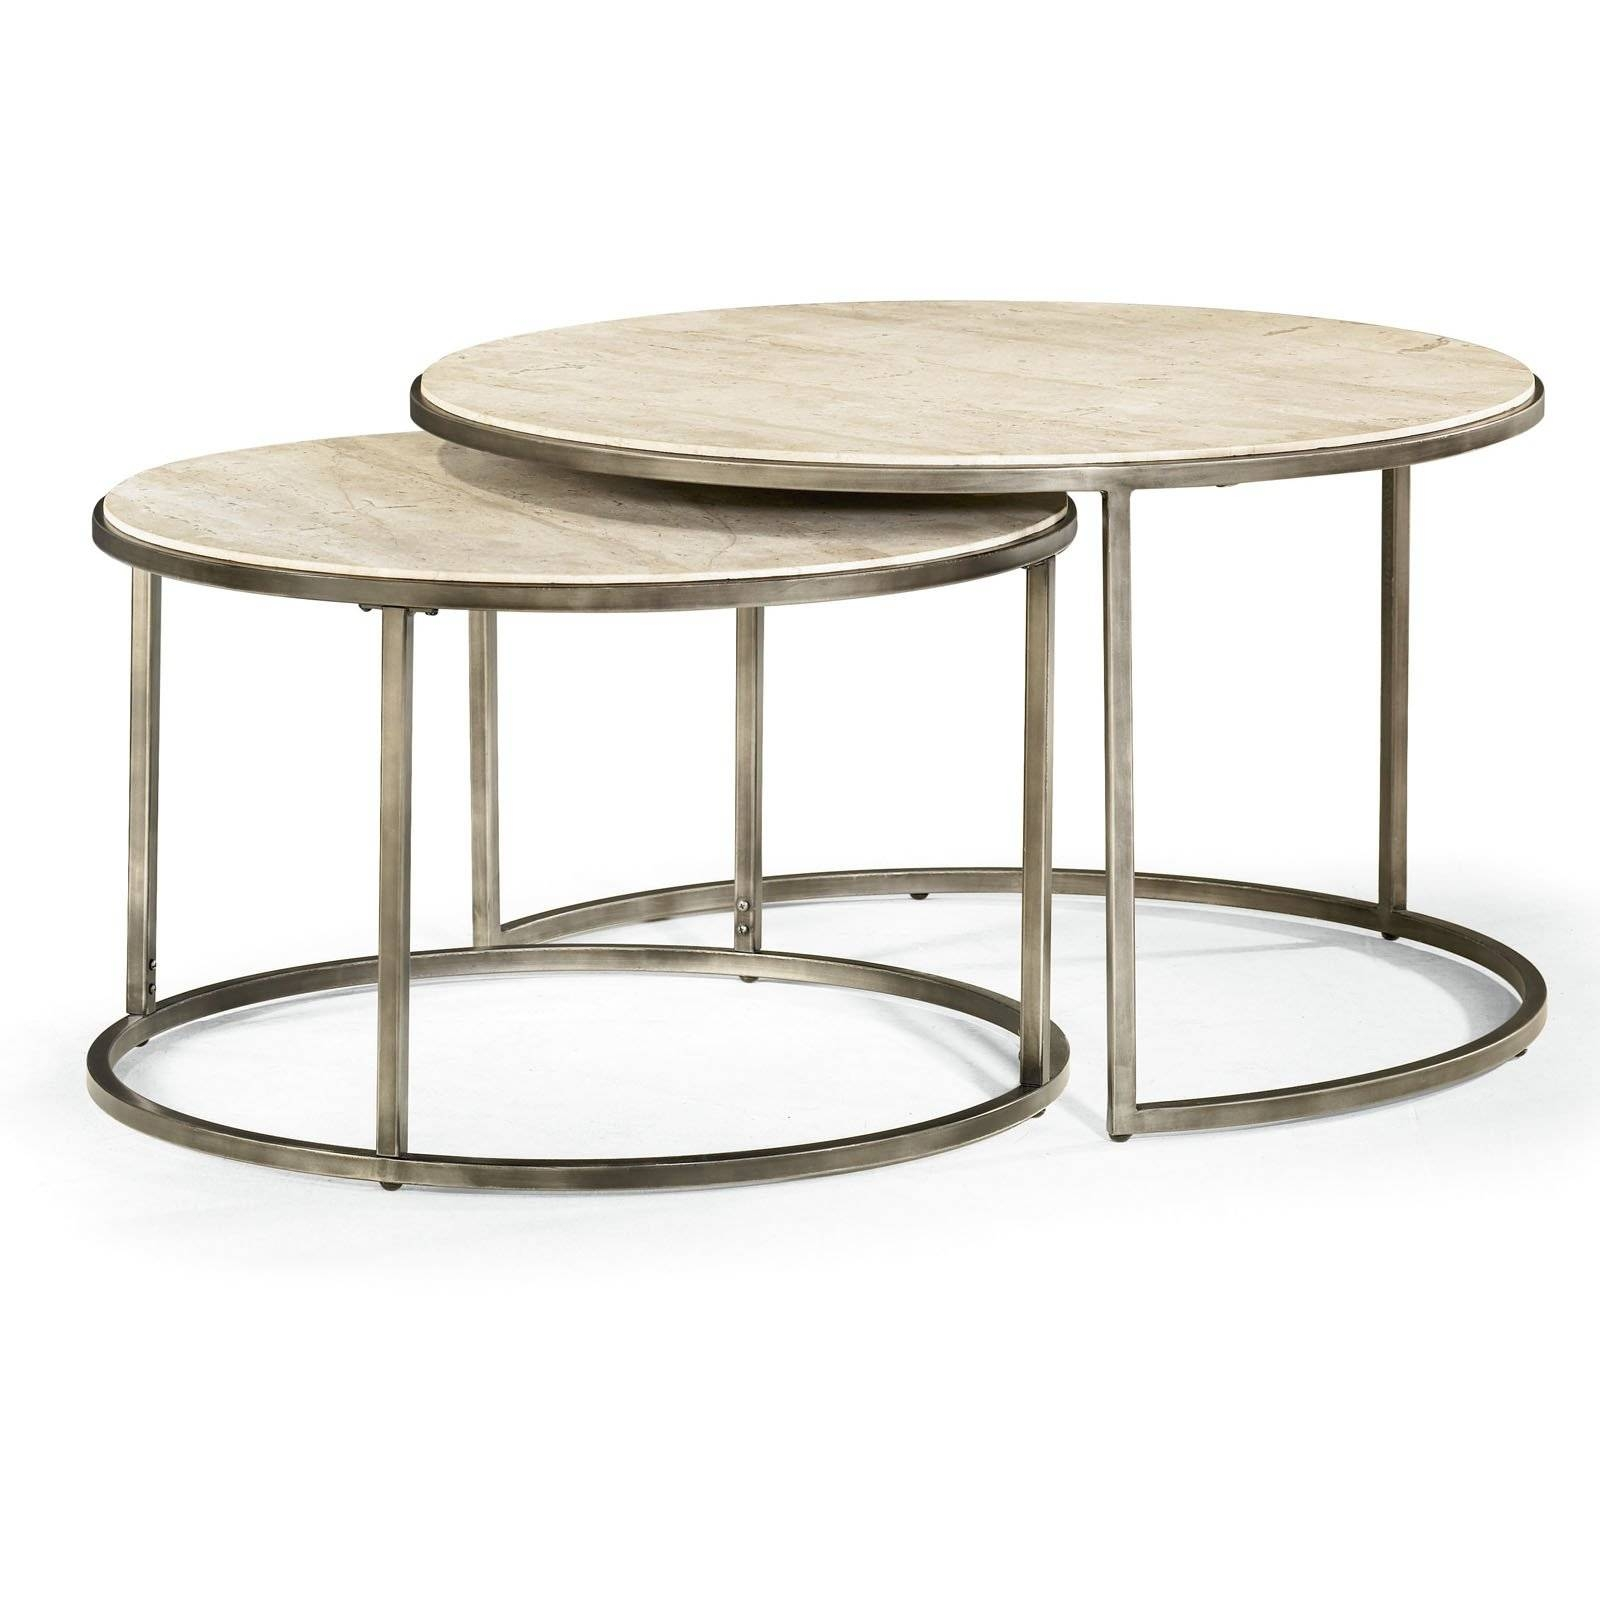 Hammary Modern Basics Round Cocktail Table - Natural Travertine with regard to Monterey Coffee Tables (Image 12 of 30)